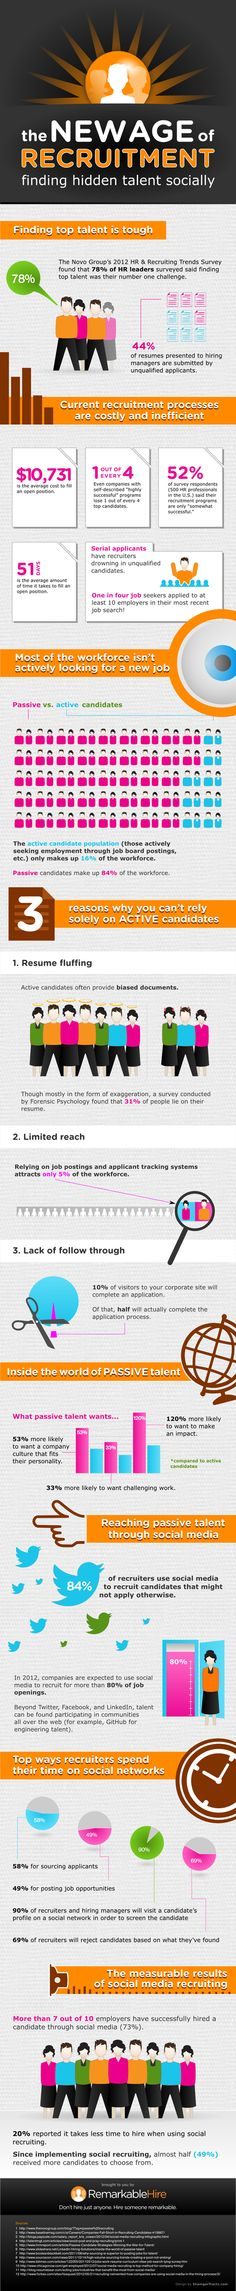 How to Find Top Tech Talent on Social Media | Move UP | Scoop.it